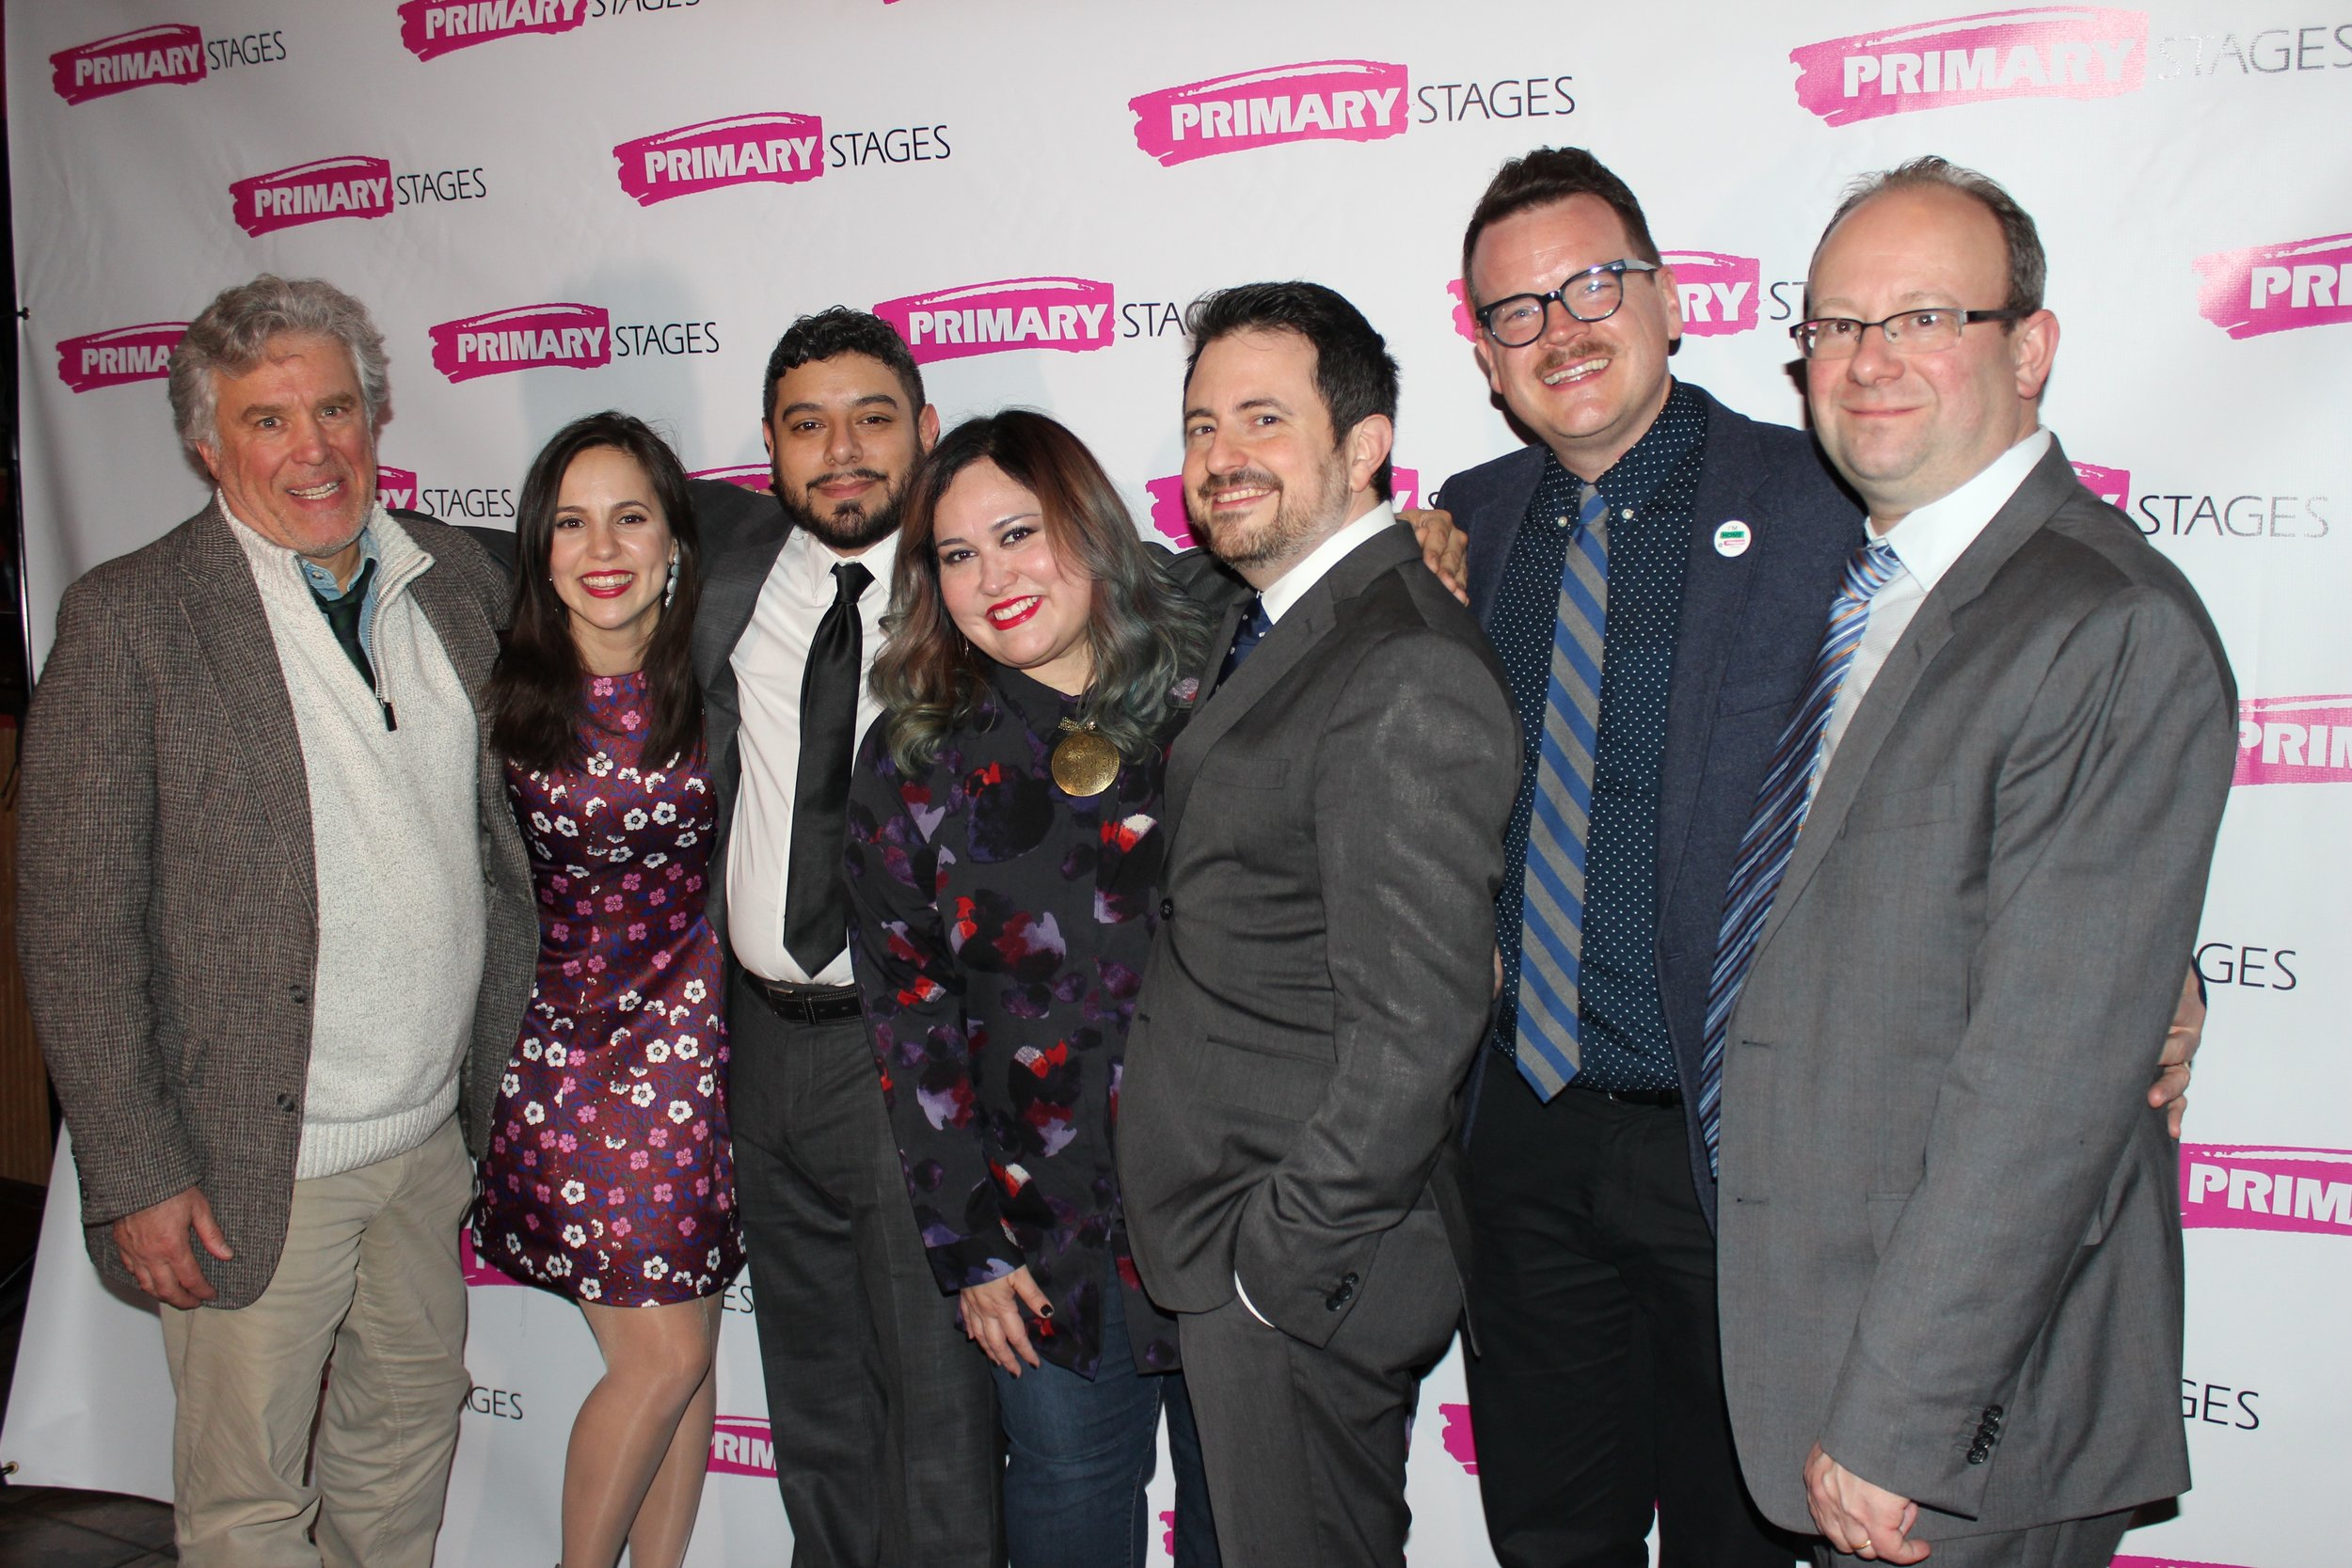 From Left: Casey Childs, Annie Dow, Eddie Martinez, Tanya Saracho, Jerry Ruiz, Shane D. Hudson, and Andrew Lenyse. Photo Credit: Kristi Long